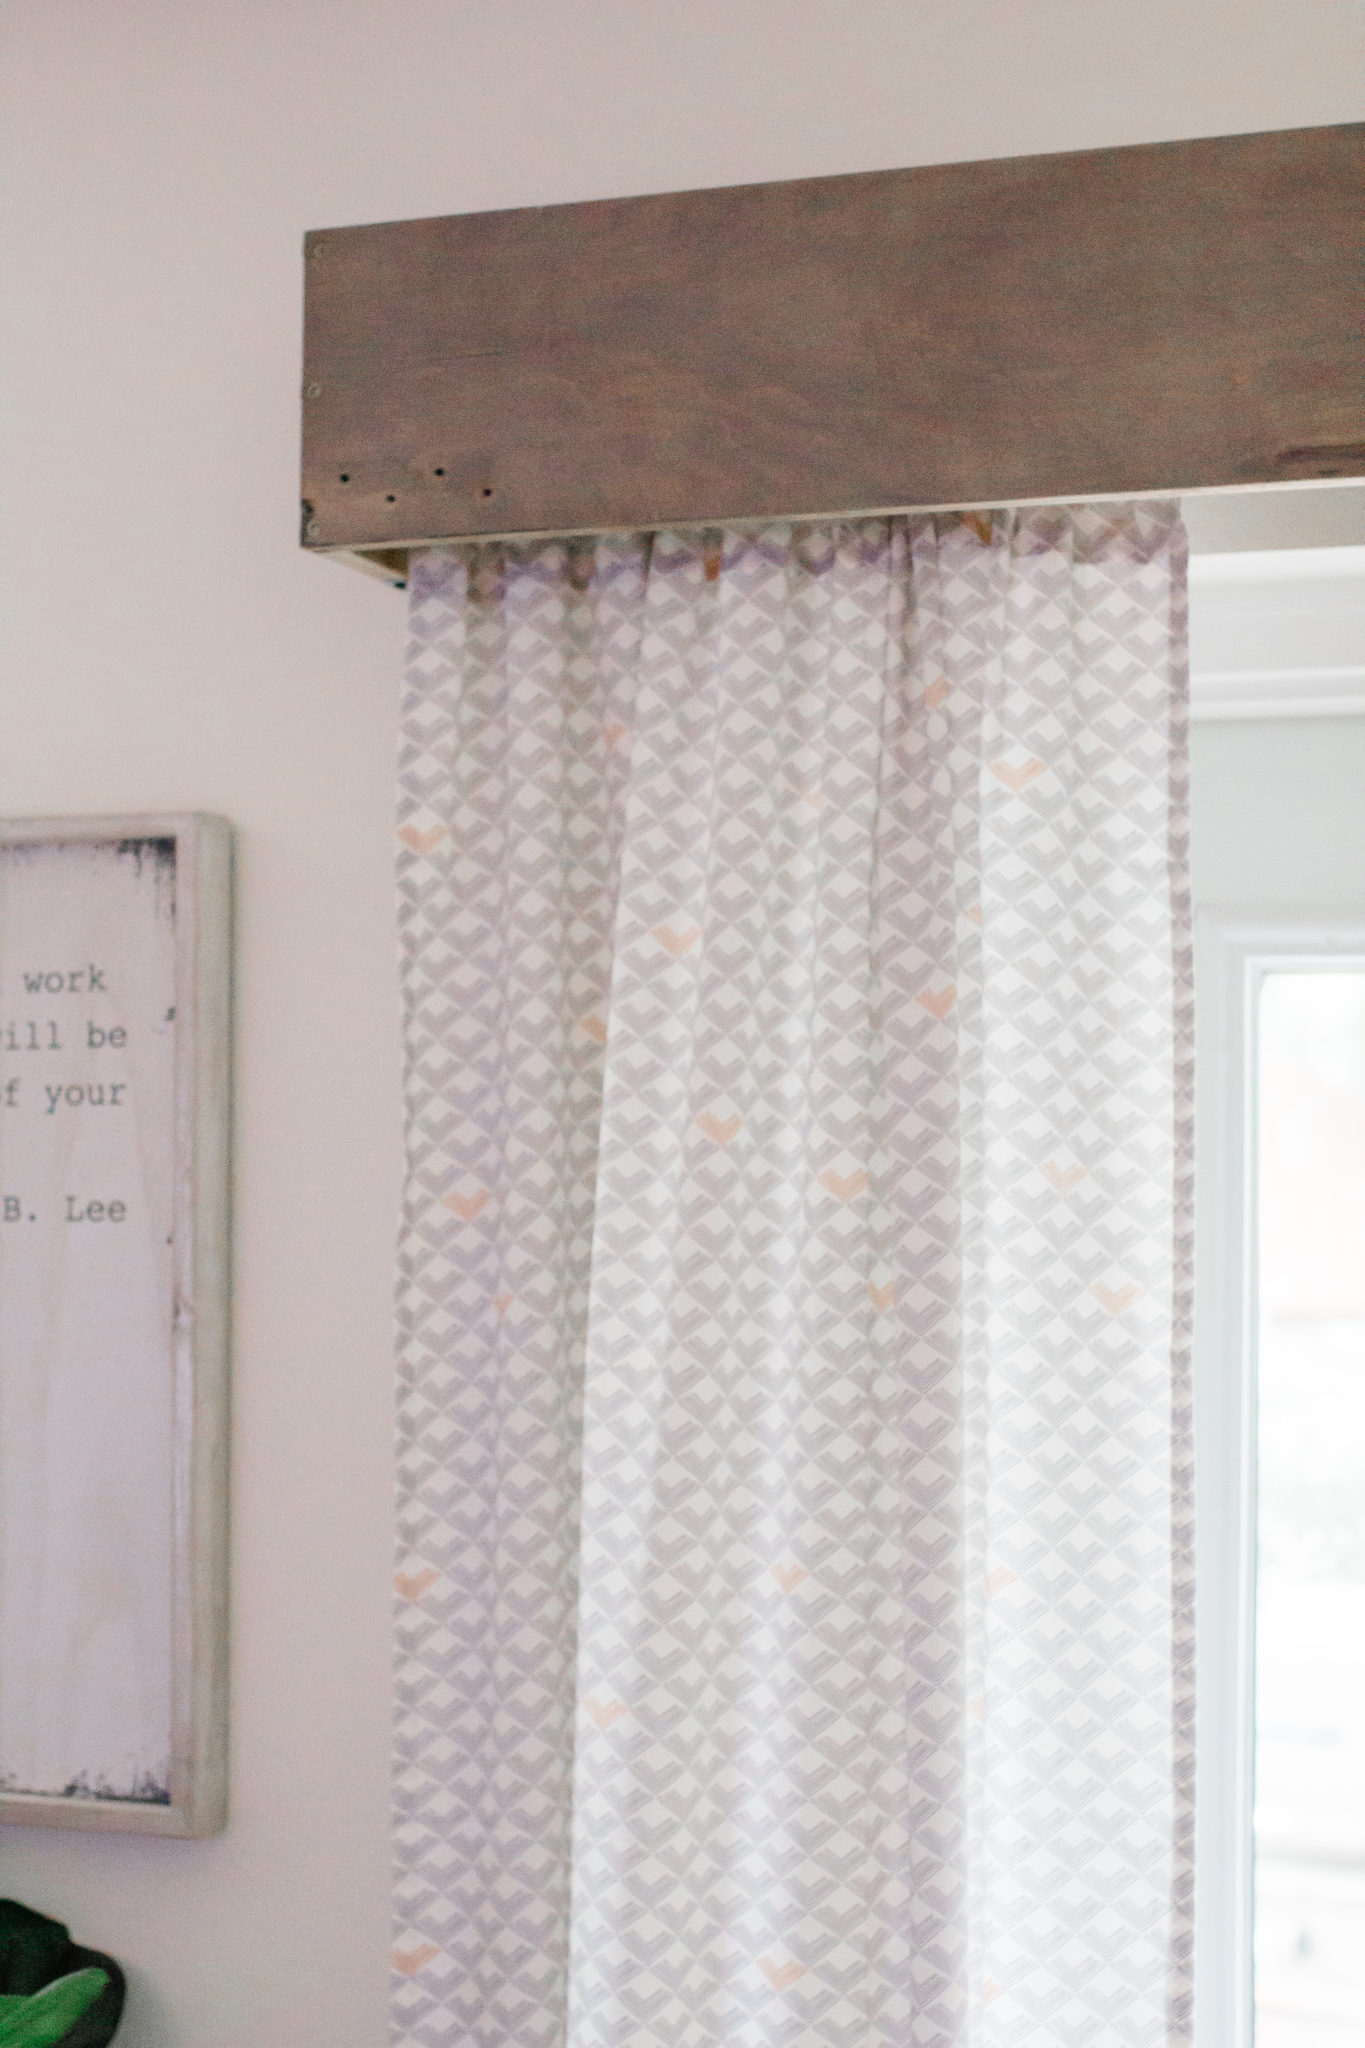 DIY Wood Valance, wood cornice, living room refresh on a budget, update living space on a budget, custom modern curtains